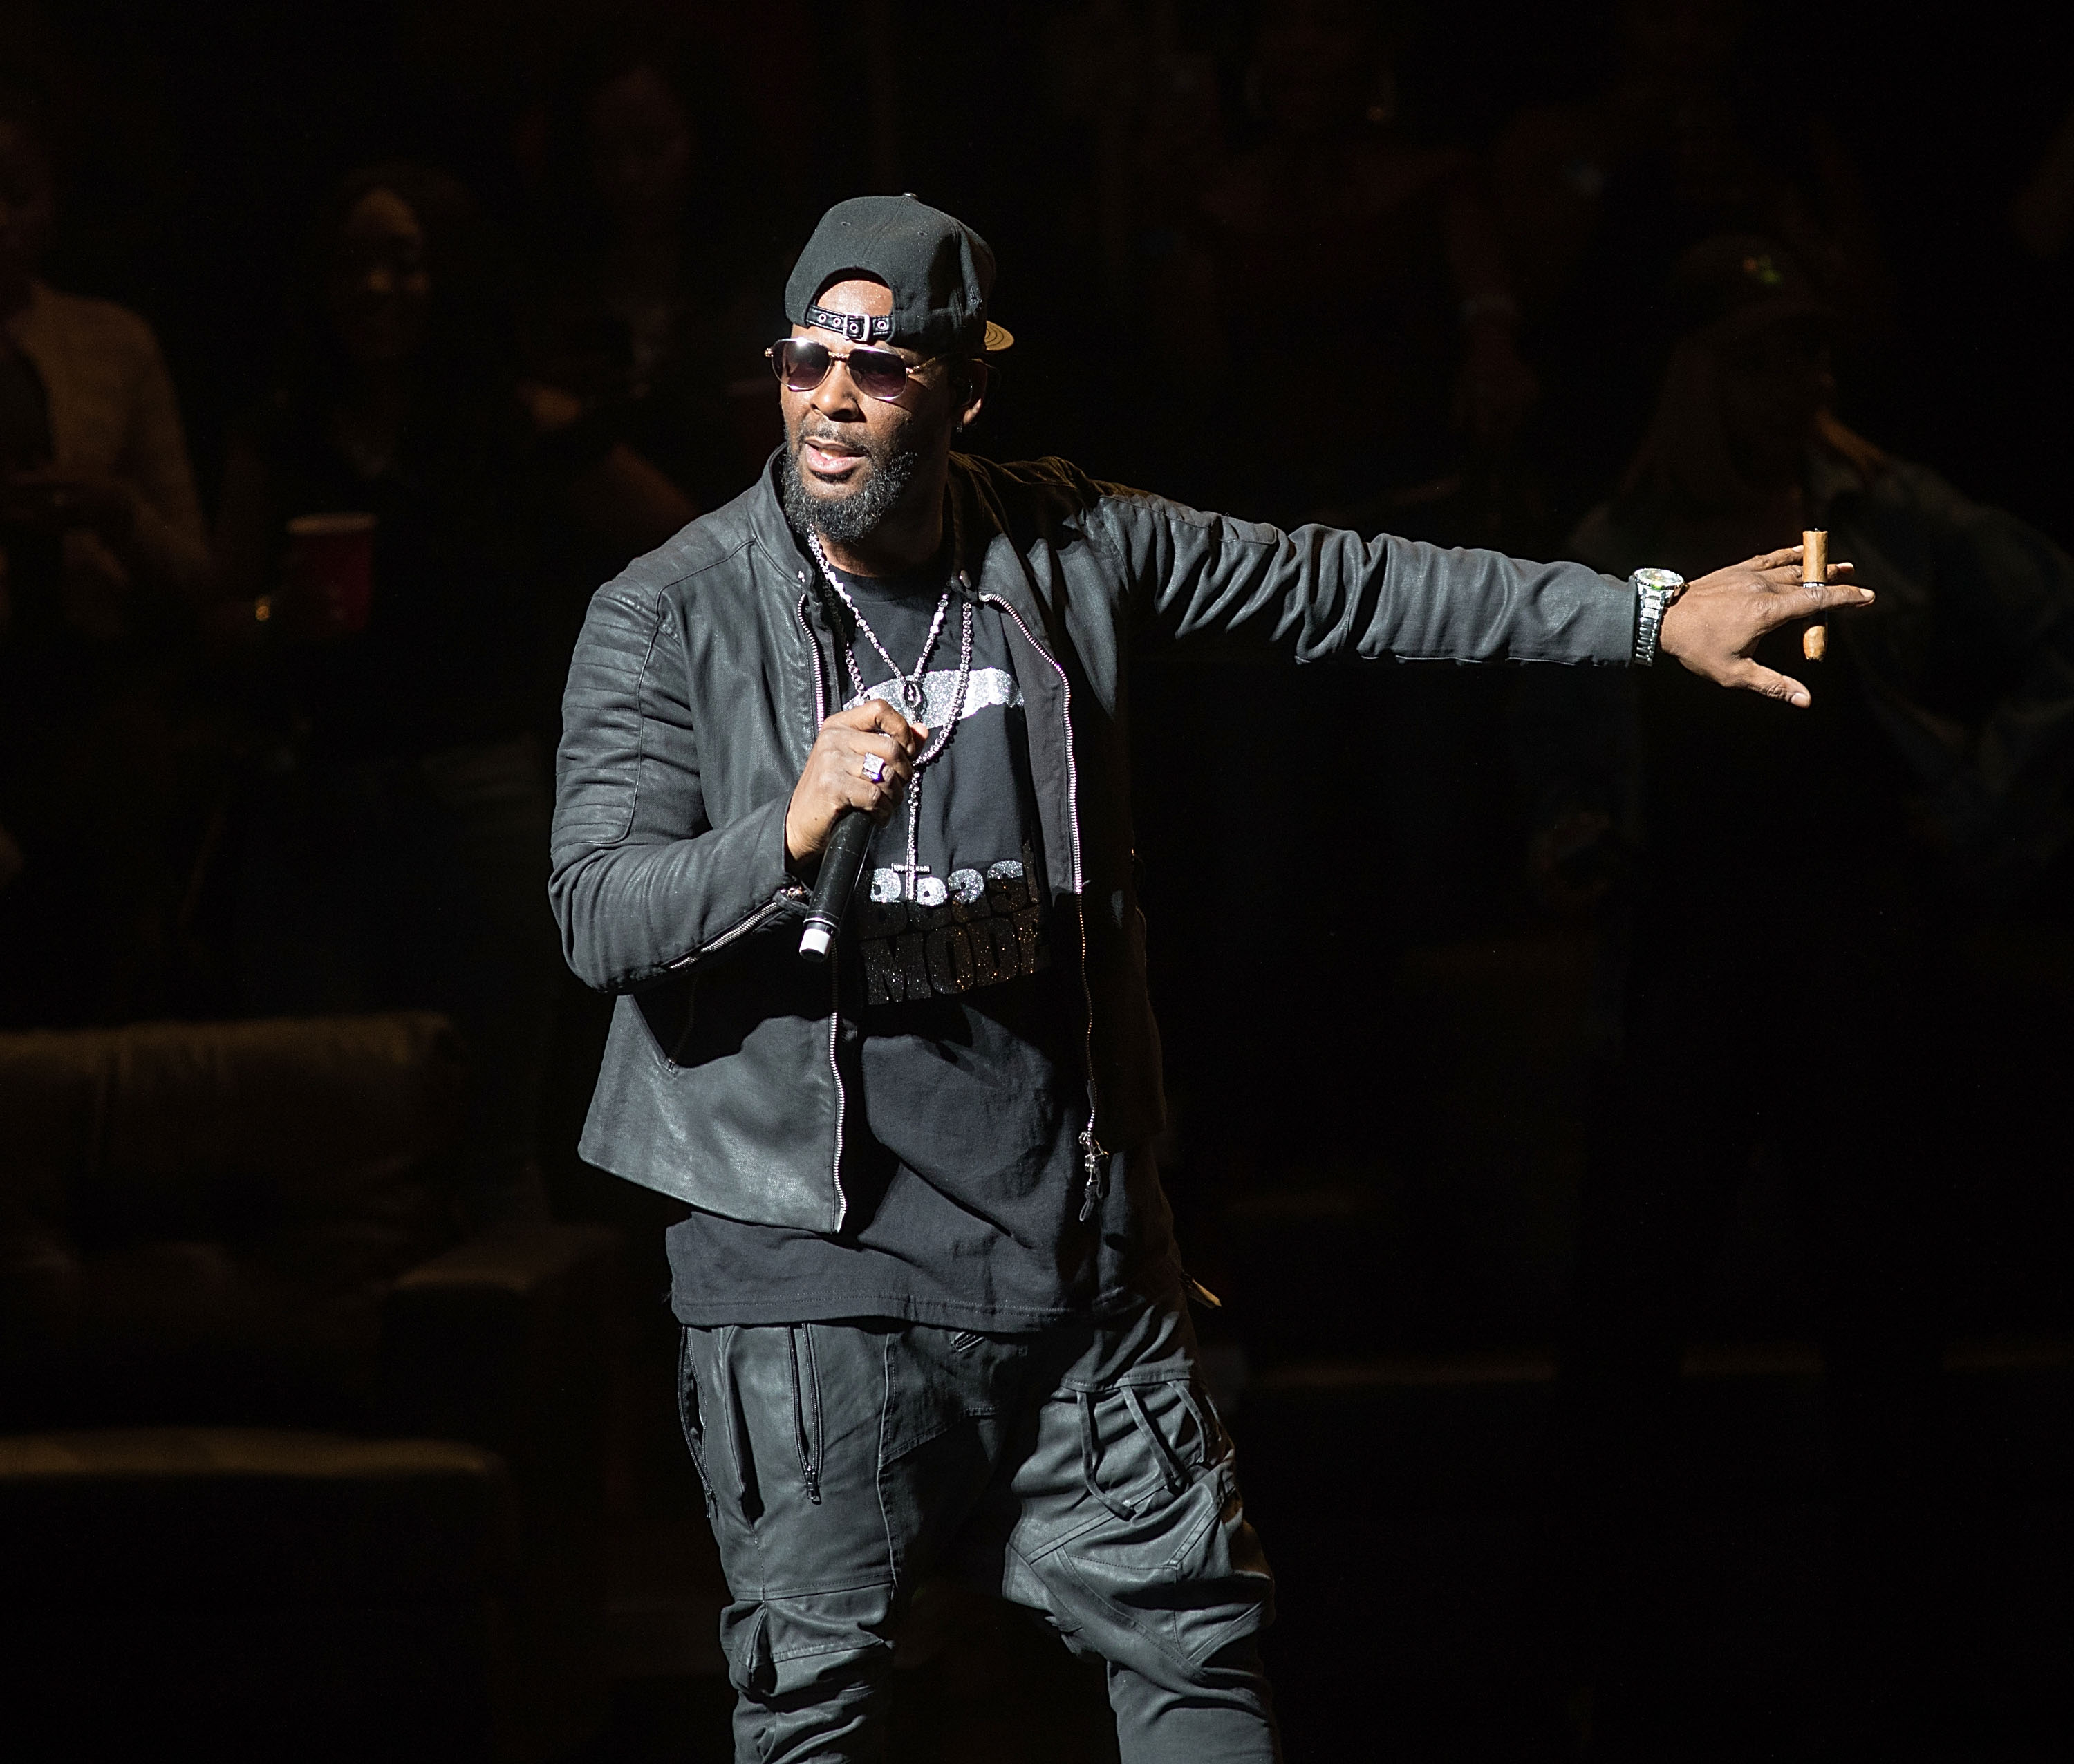 R Kelly Faces New Allegations of Underage Physical Abuse